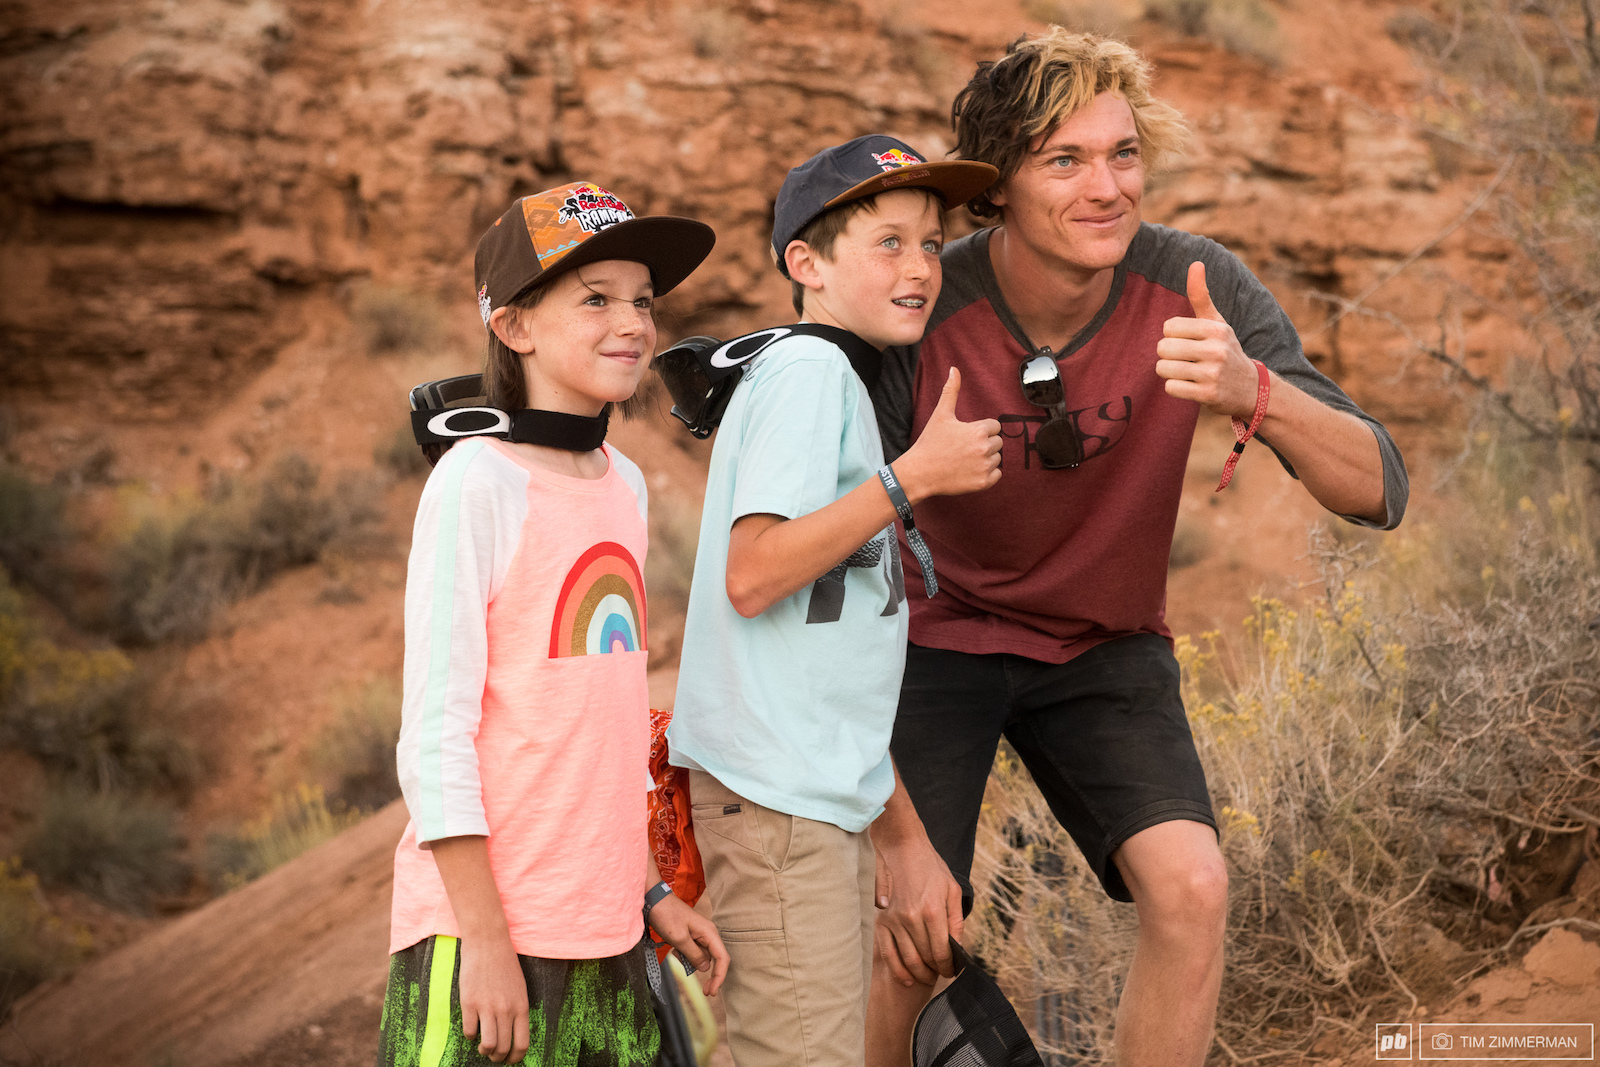 Tomas Genon poses for a photo with frothing groms Ethan and Beatrice.